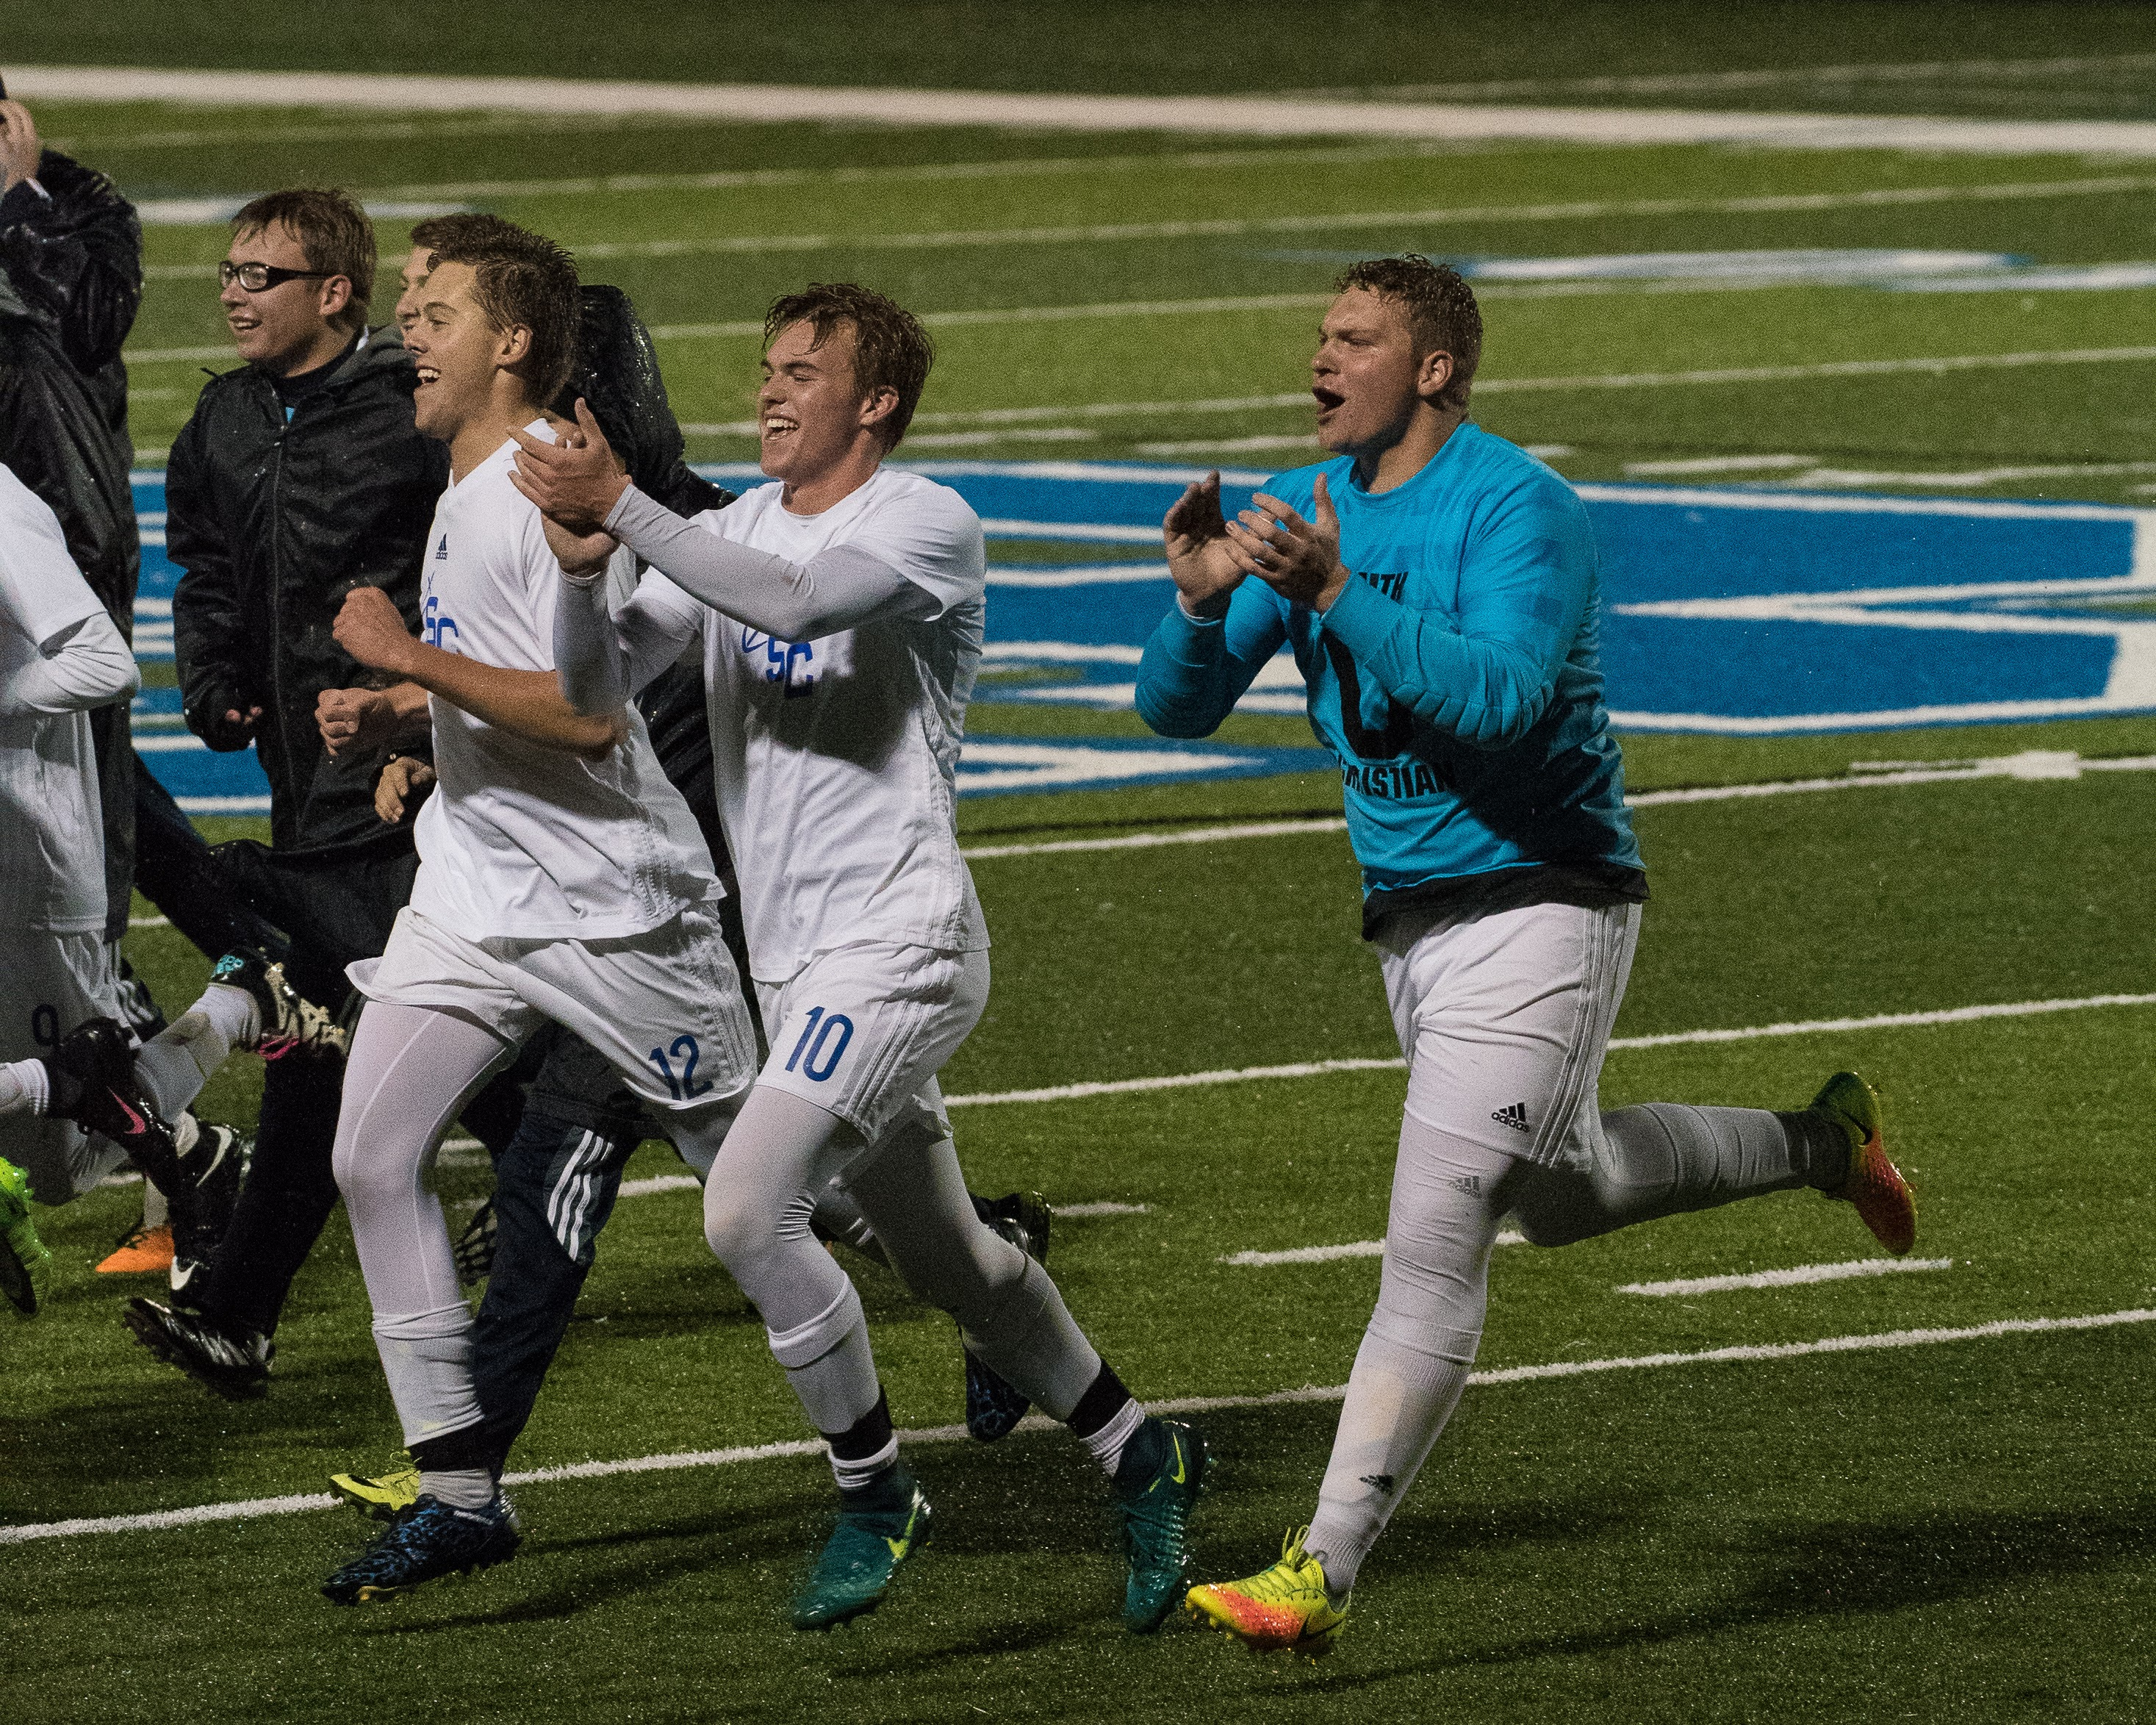 Boys Soccer players earn All-State awards